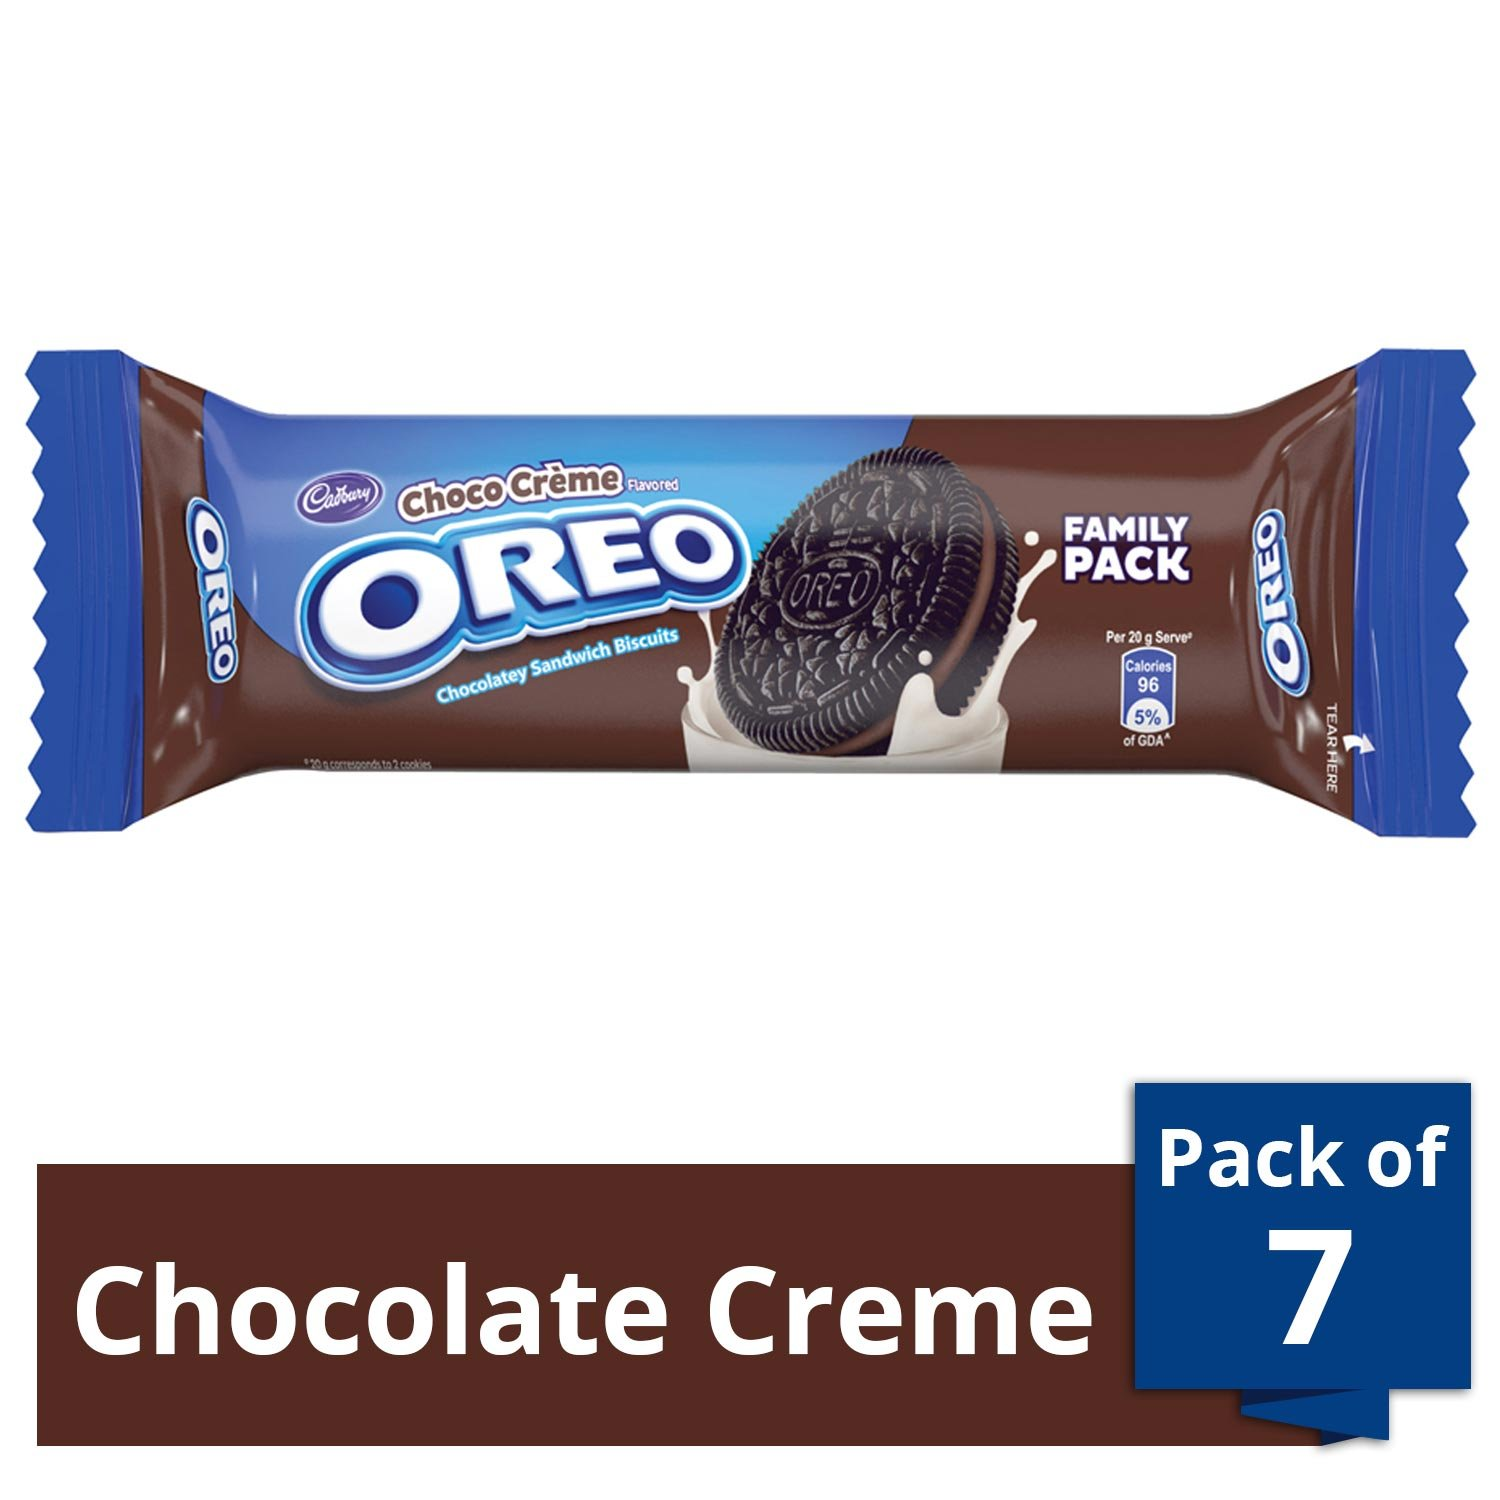 Oreo Choco Creme Biscuit - Pack of 8